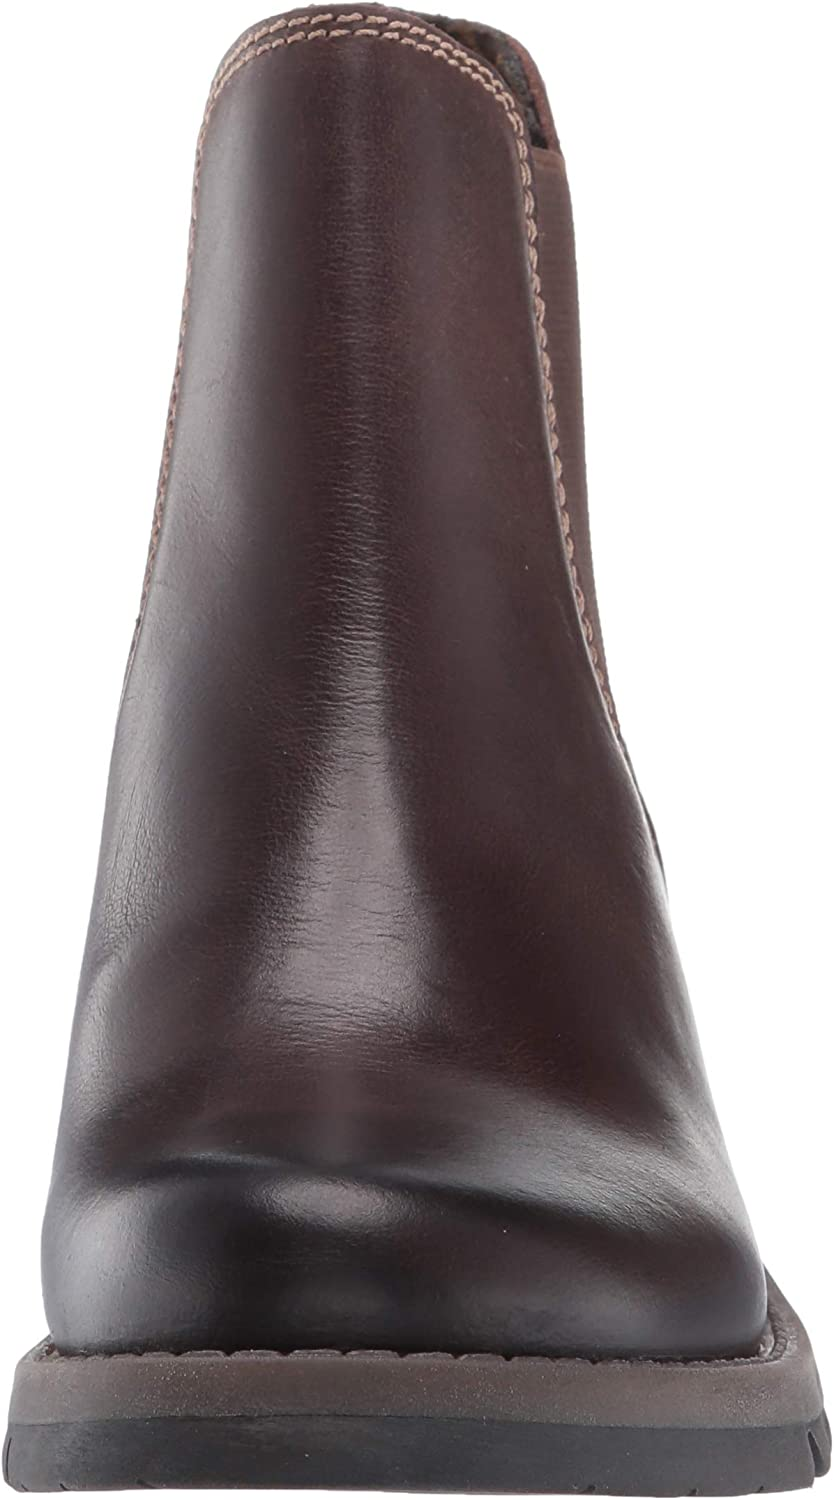 Fly London Salv, Bottes Chelsea Femme Marron Dark Brown 001